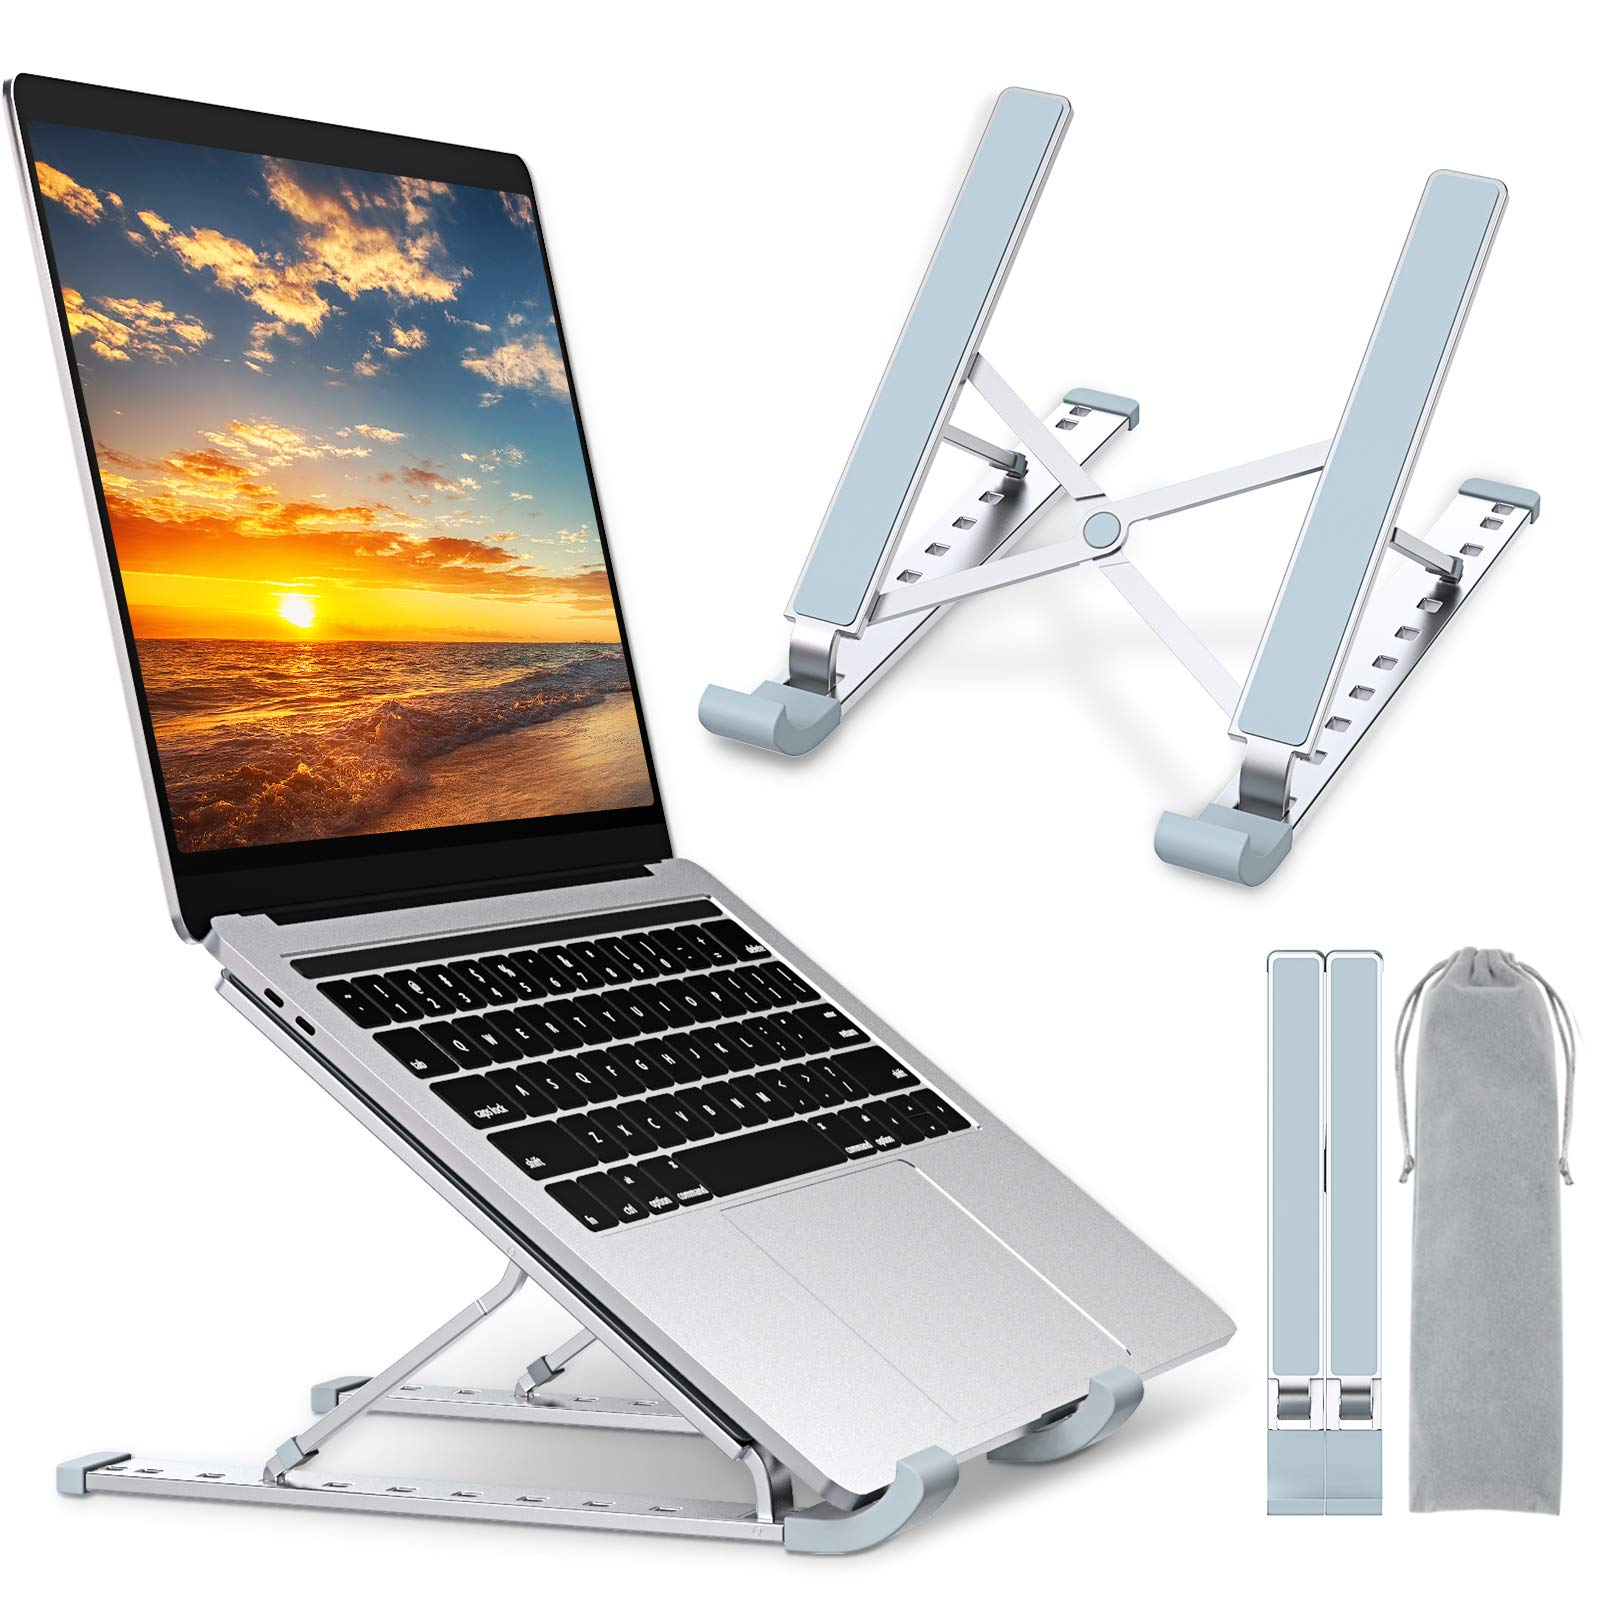 """Babacom Laptop Stand, Portable Laptop Cooling Desk Holder, 9-Levels Adjustable Notebook Riser Mount, Aluminum Ventilated Computer Stand, Compatible with MacBook Pro Air, iPad, Dell,10-15.6"""" Laptops"""